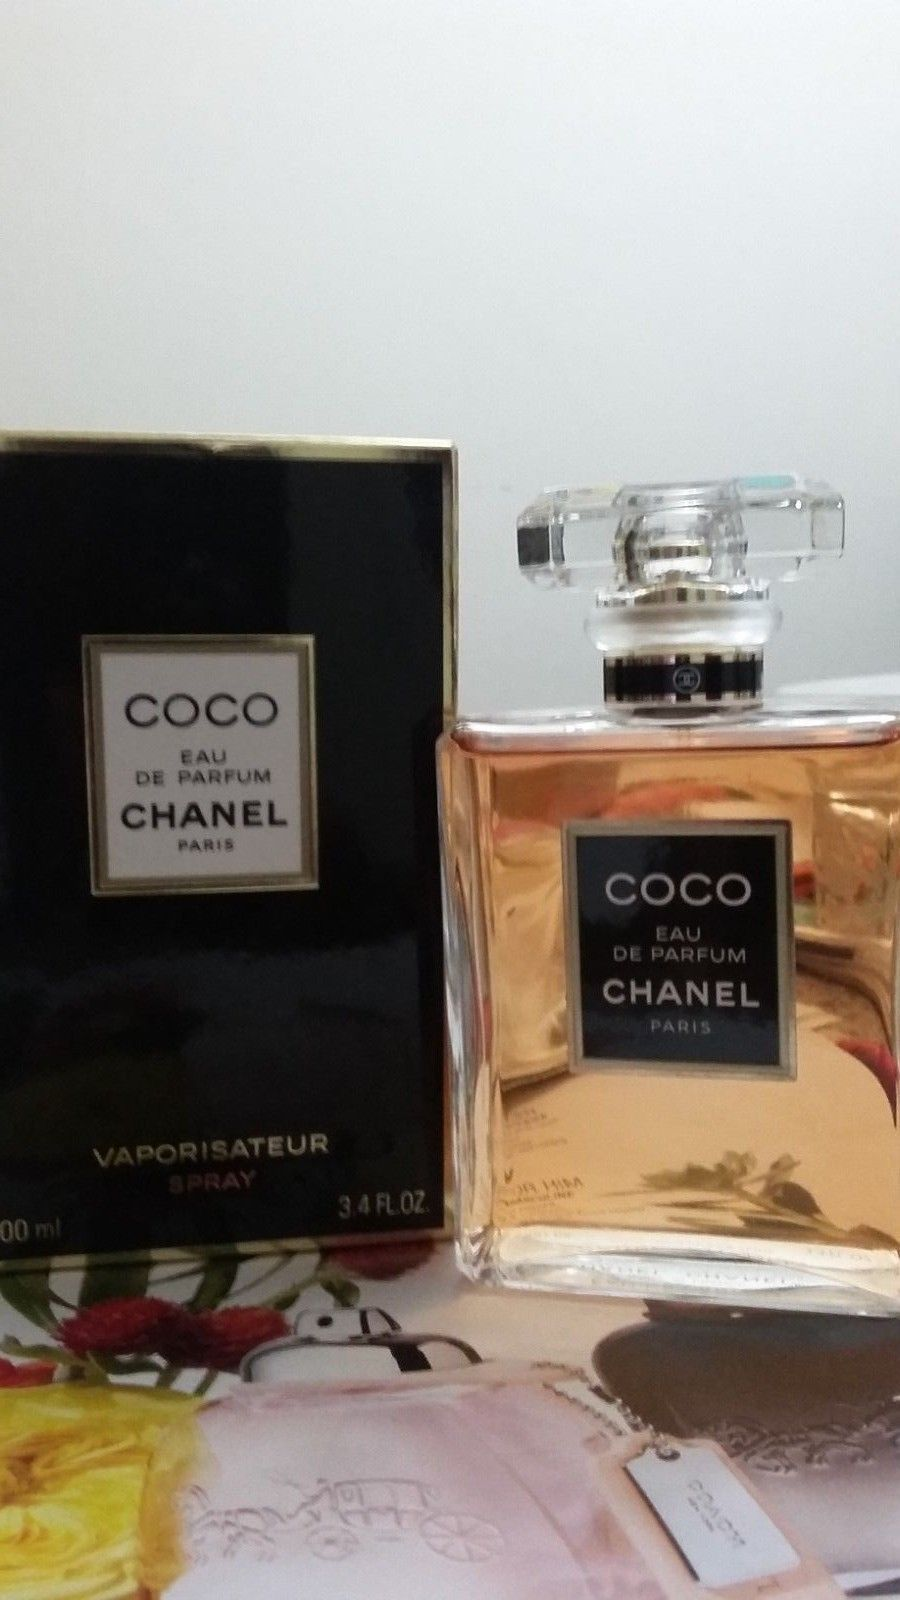 Chanel Coco 3.4 Oz Eau De Parfum Spray for women